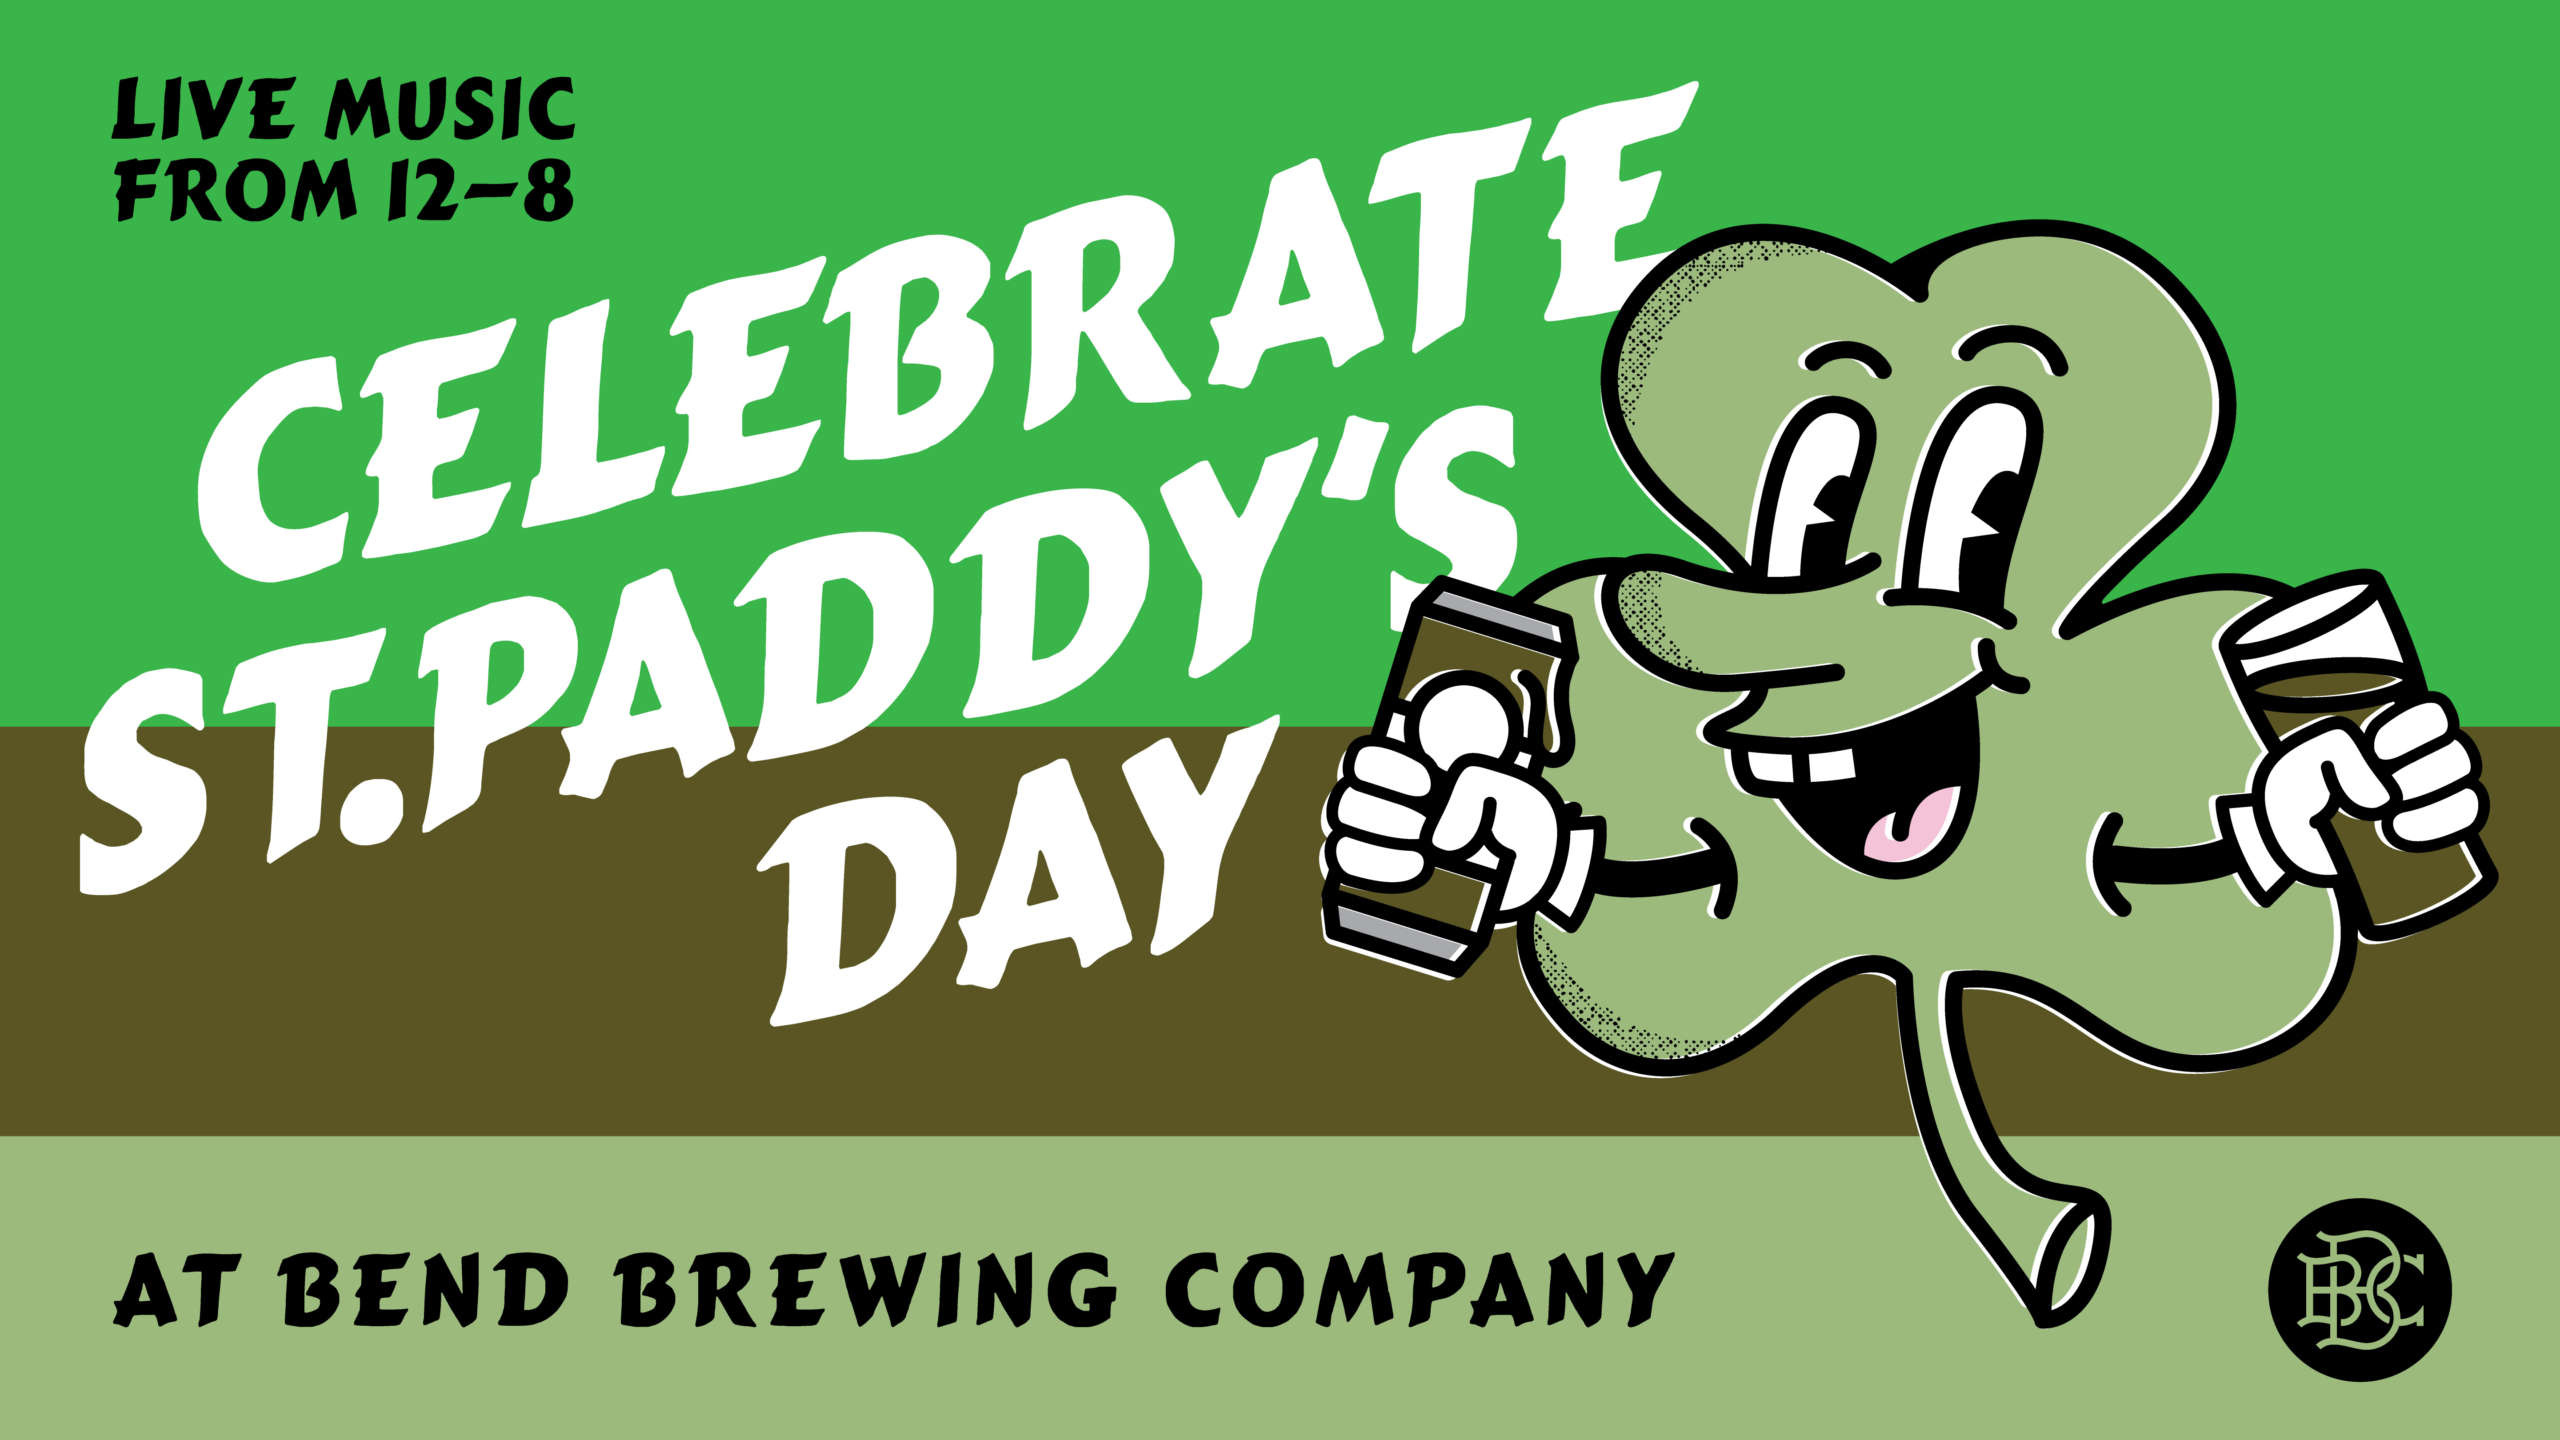 https://www.visitbend.com/wp-content/uploads/2020/03/st.paddys-bend-brewing-company-960-scaled.jpg